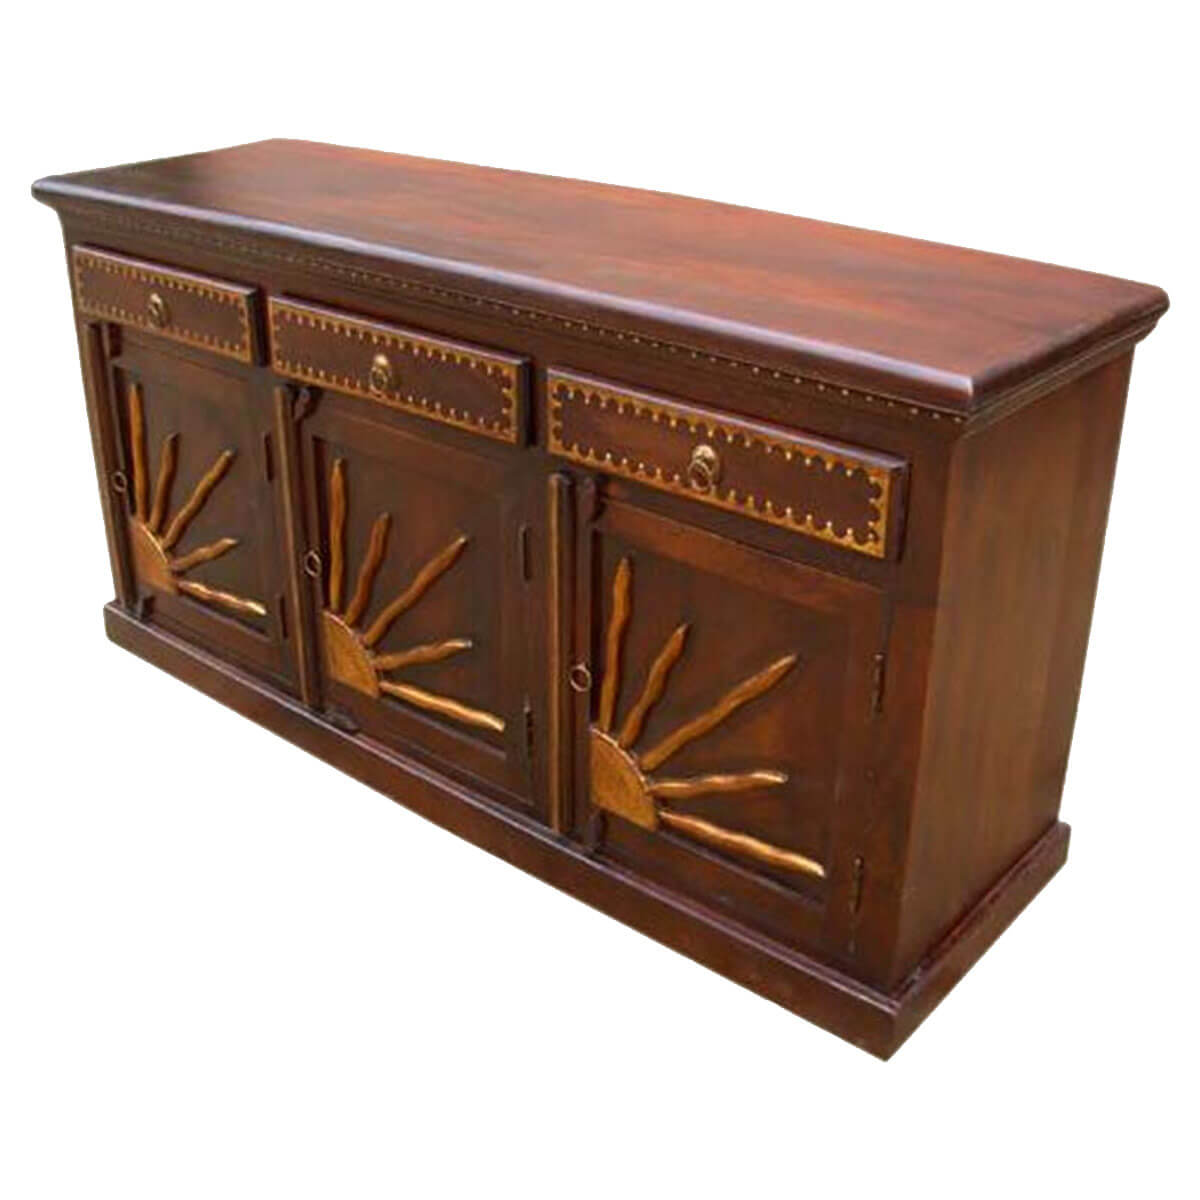 Dining Room Buffet Cabinet: Santa Fe Brass Sunrise Dining Room 3 Drawer Sideboard Cabinet